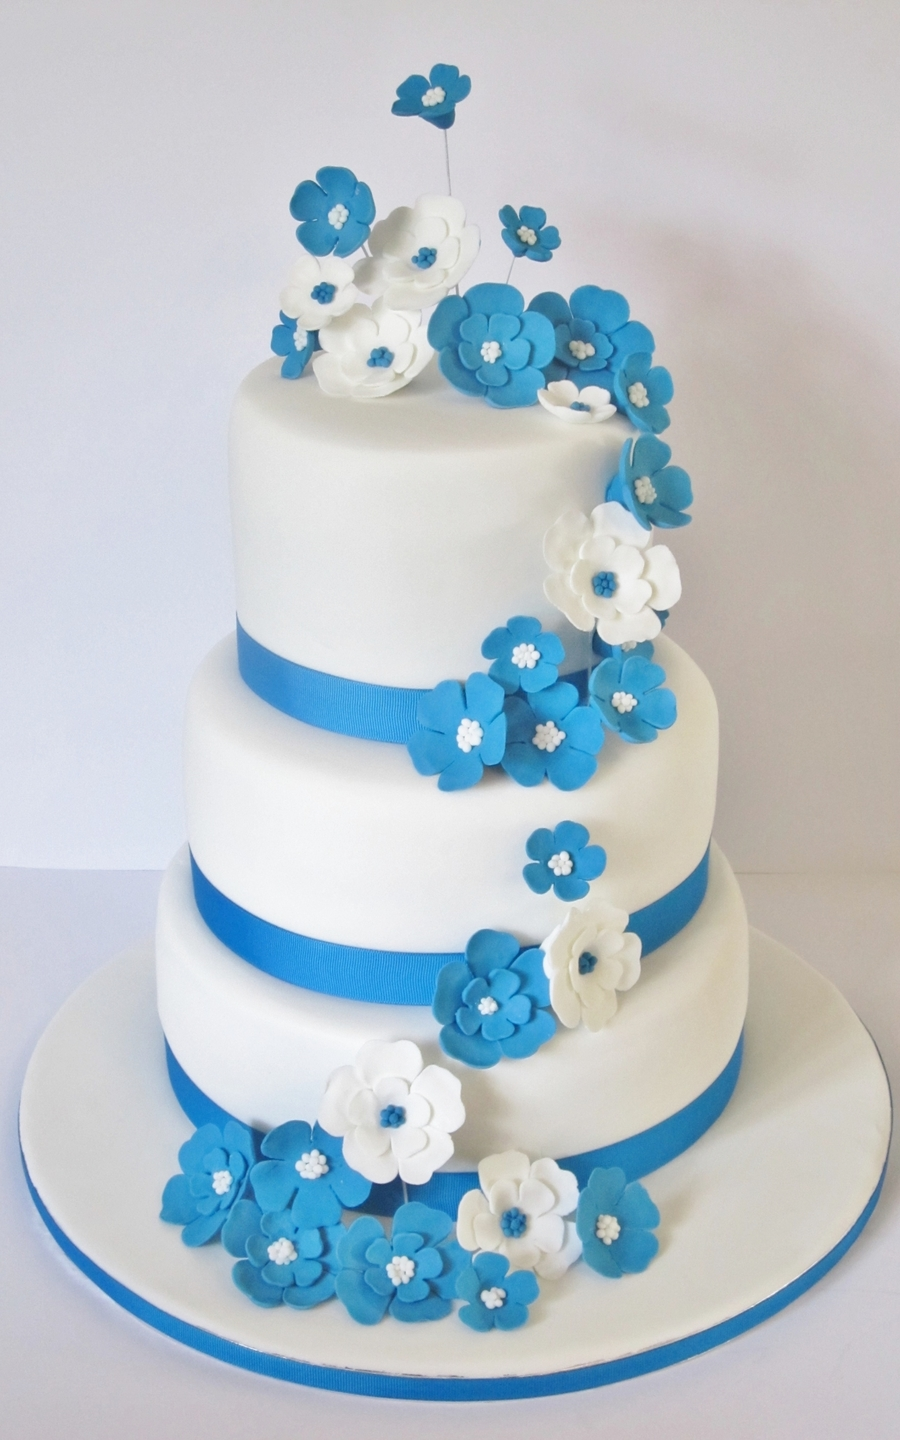 Blue And White Wedding Cake Wth Fondant Flowers on Cake Central